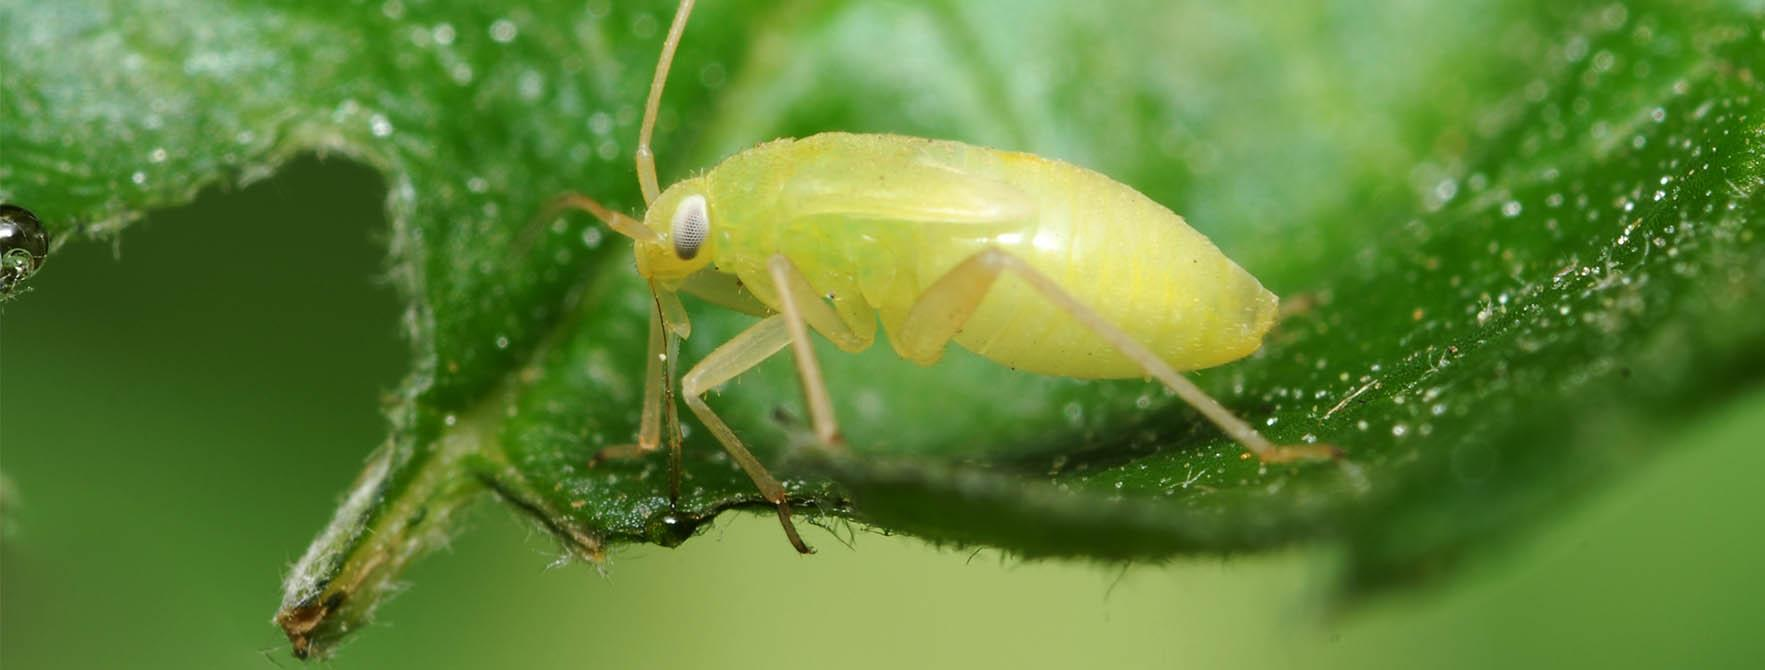 What Are Aphids | Aphid Insect Facts, Habitat & Control Options